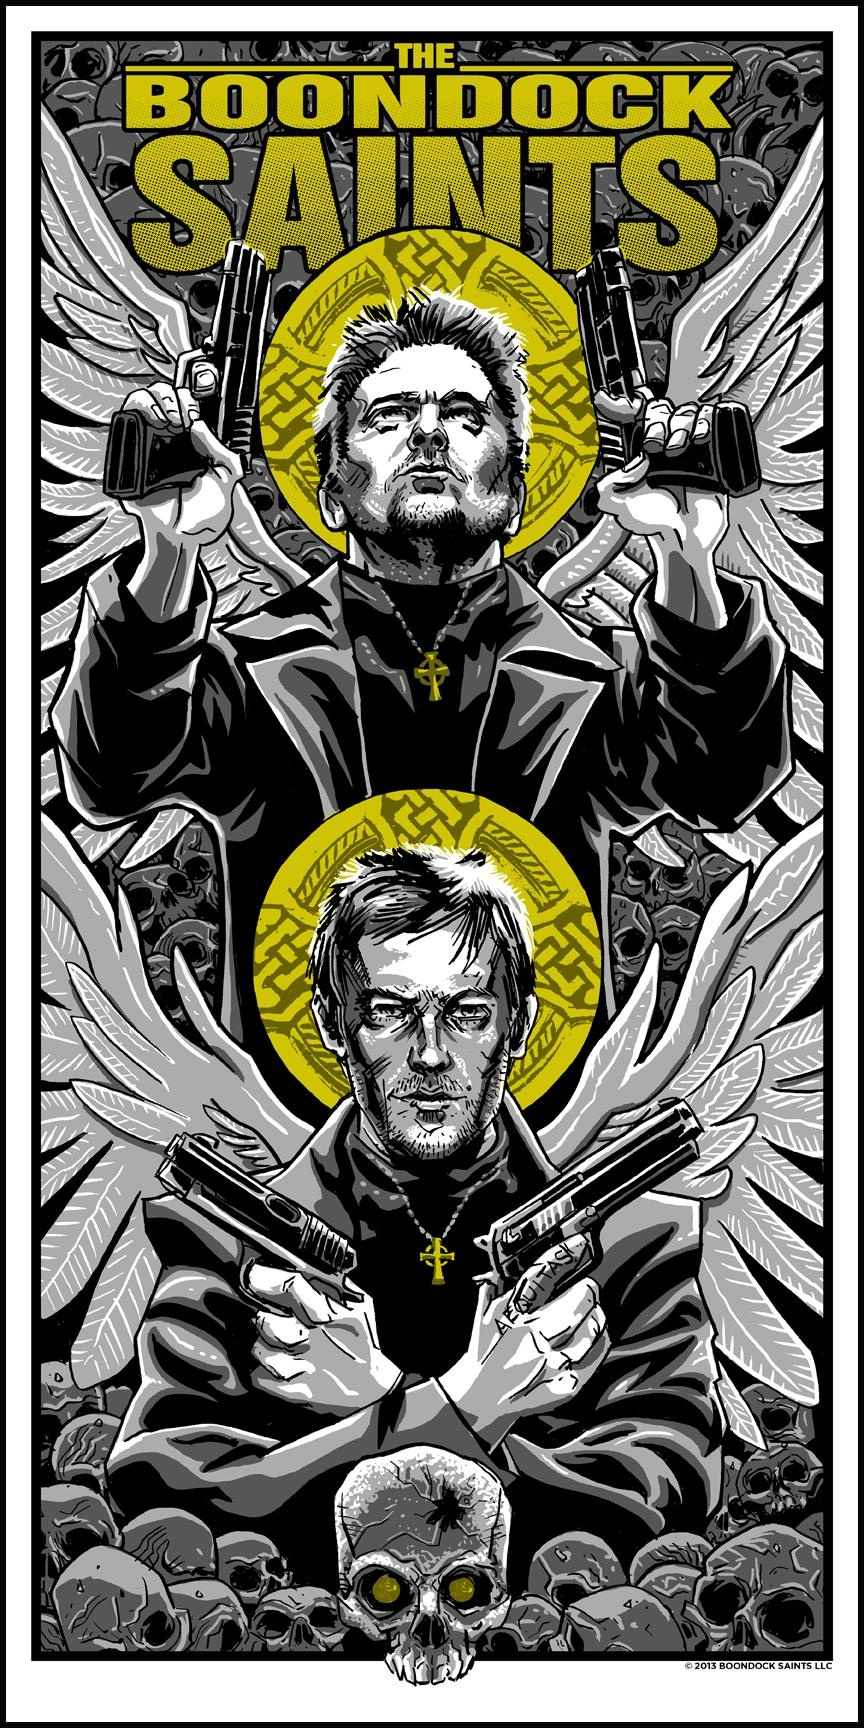 The Boondock Saints | 411Posters Regarding Boondock Saints Wall Art (Image 15 of 20)